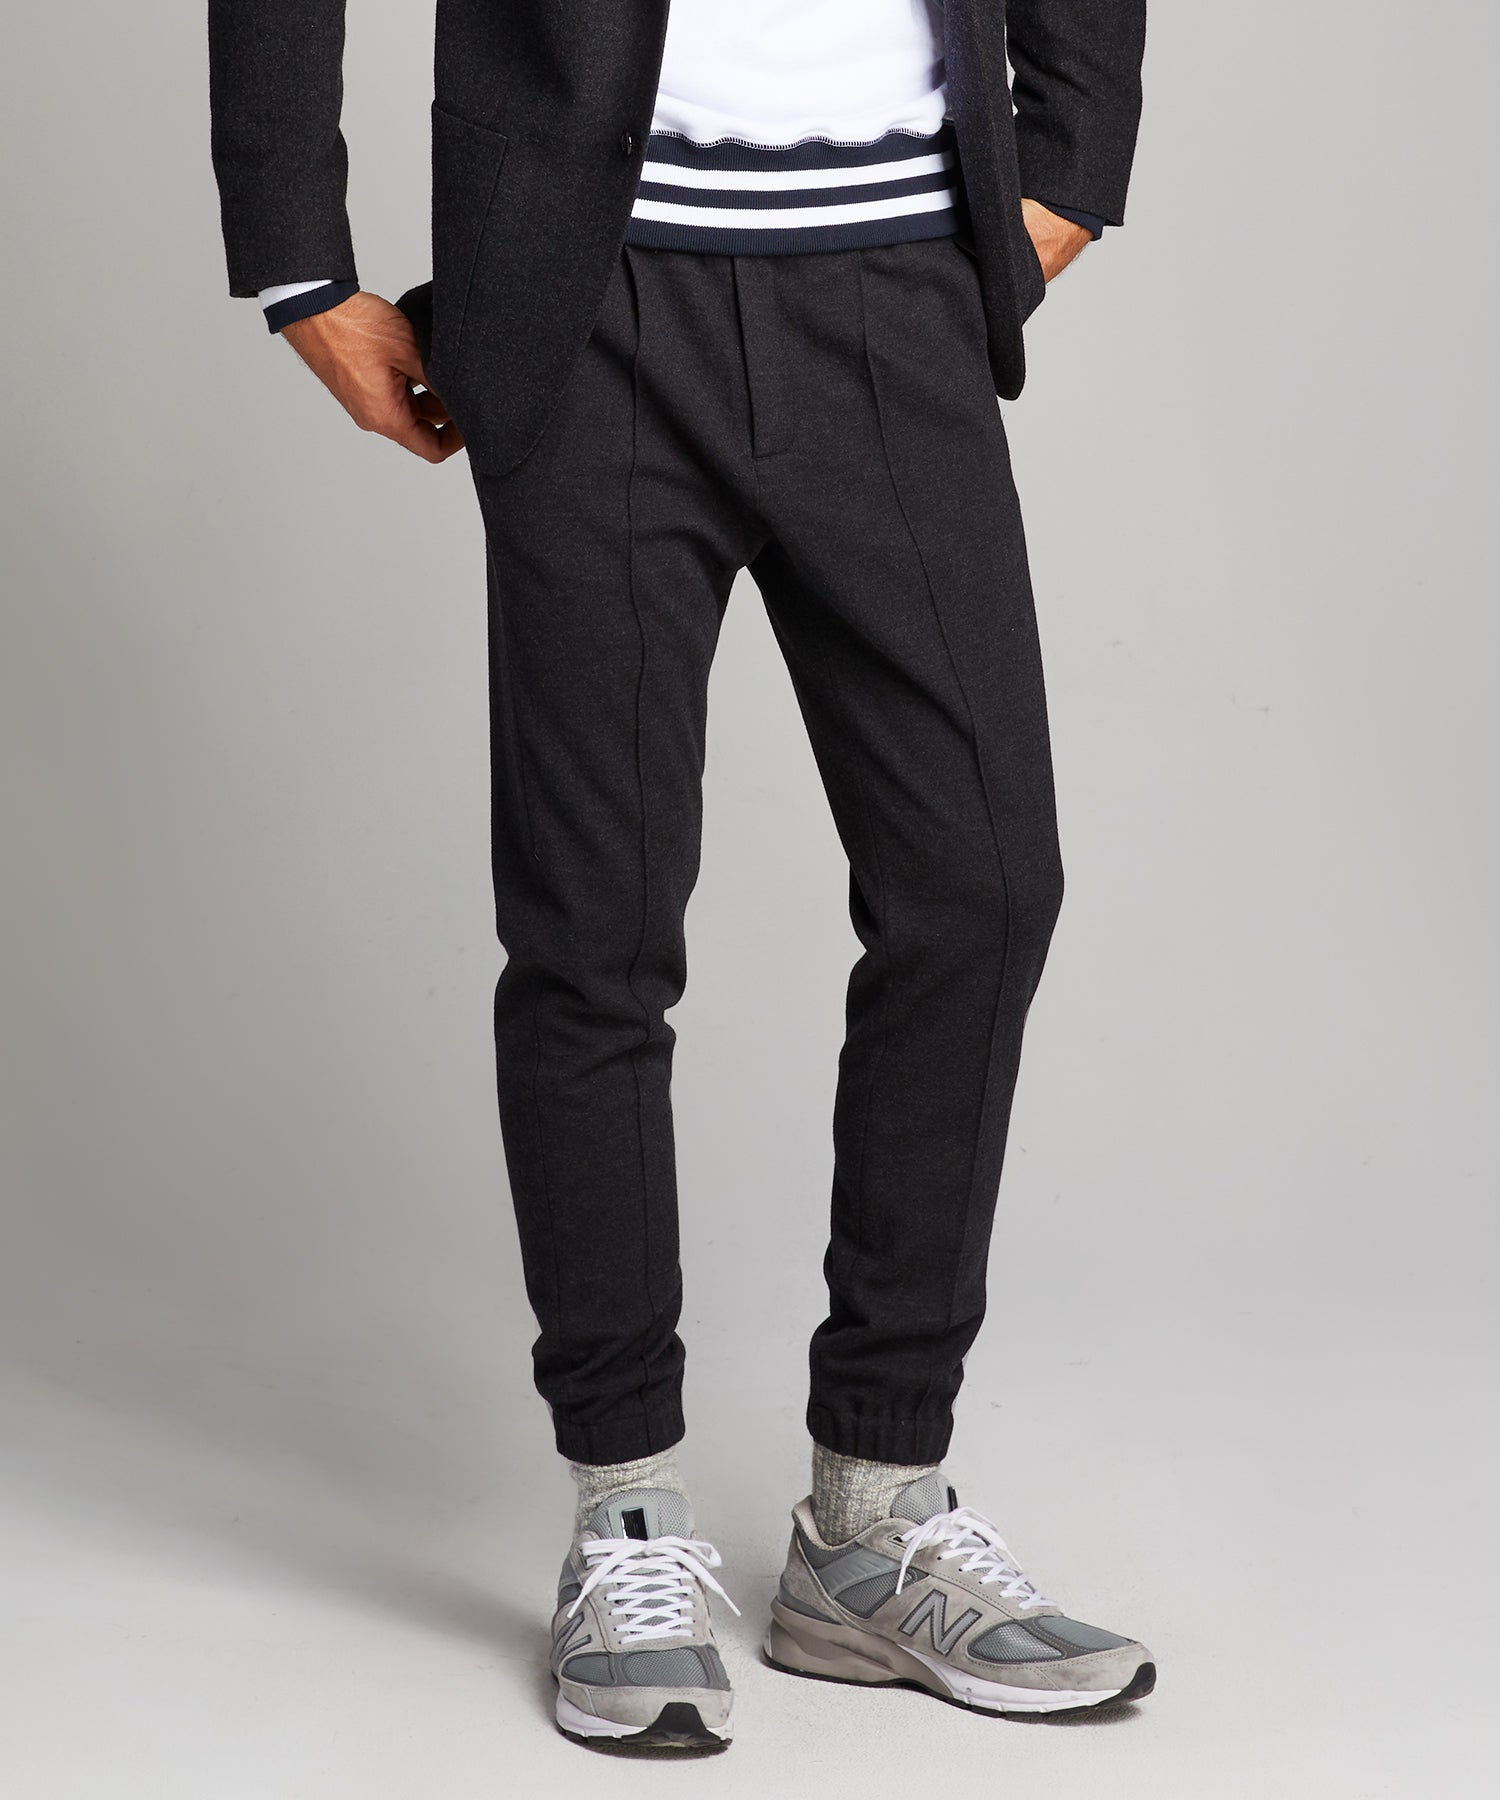 Knit Traveler Suit Pant in Charcoal